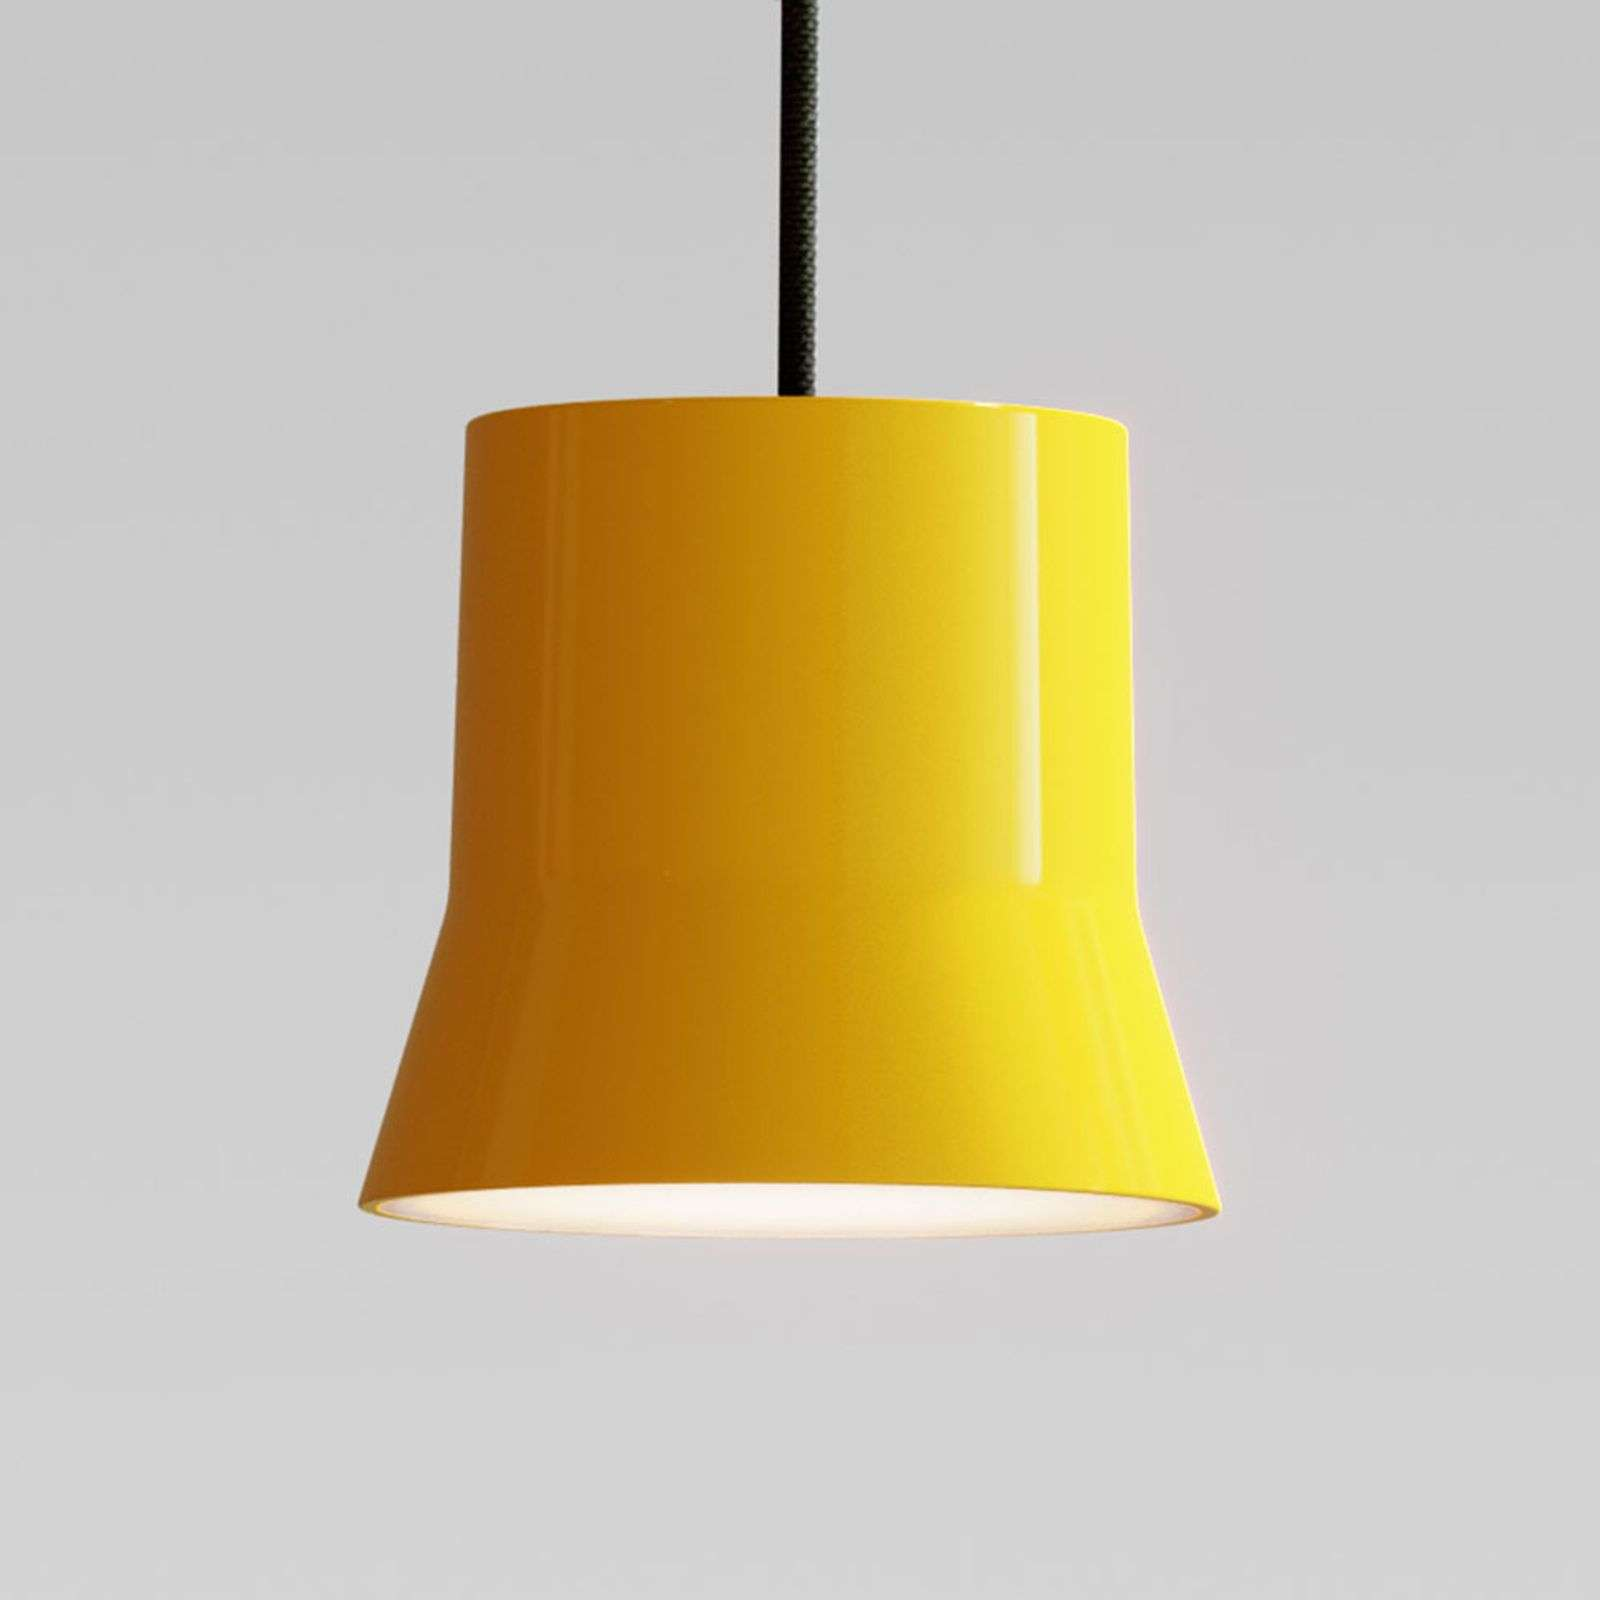 Artemide GIO.light LED hanglamp, geel